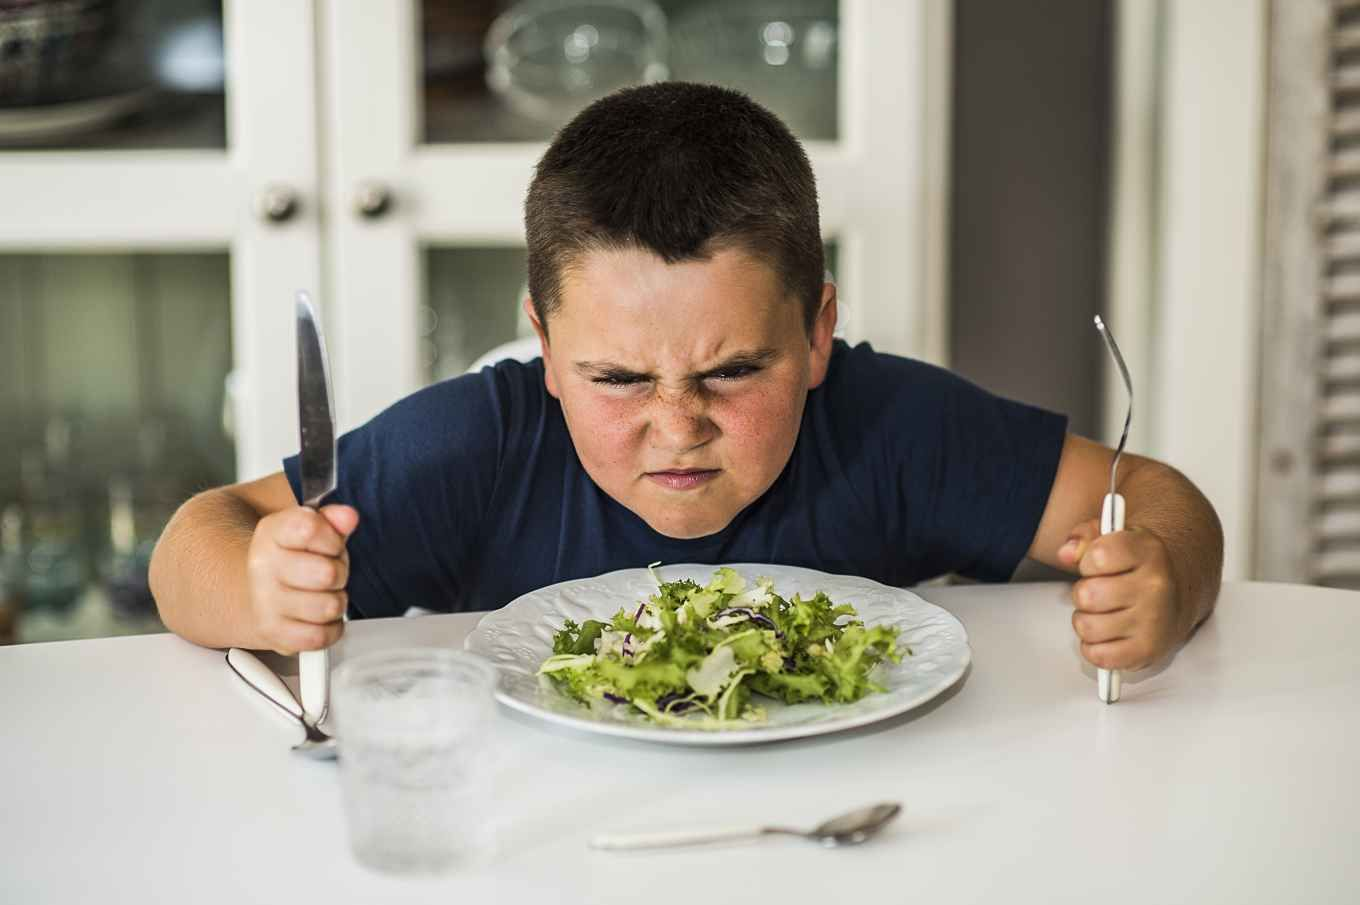 Parenting An Overweight Child